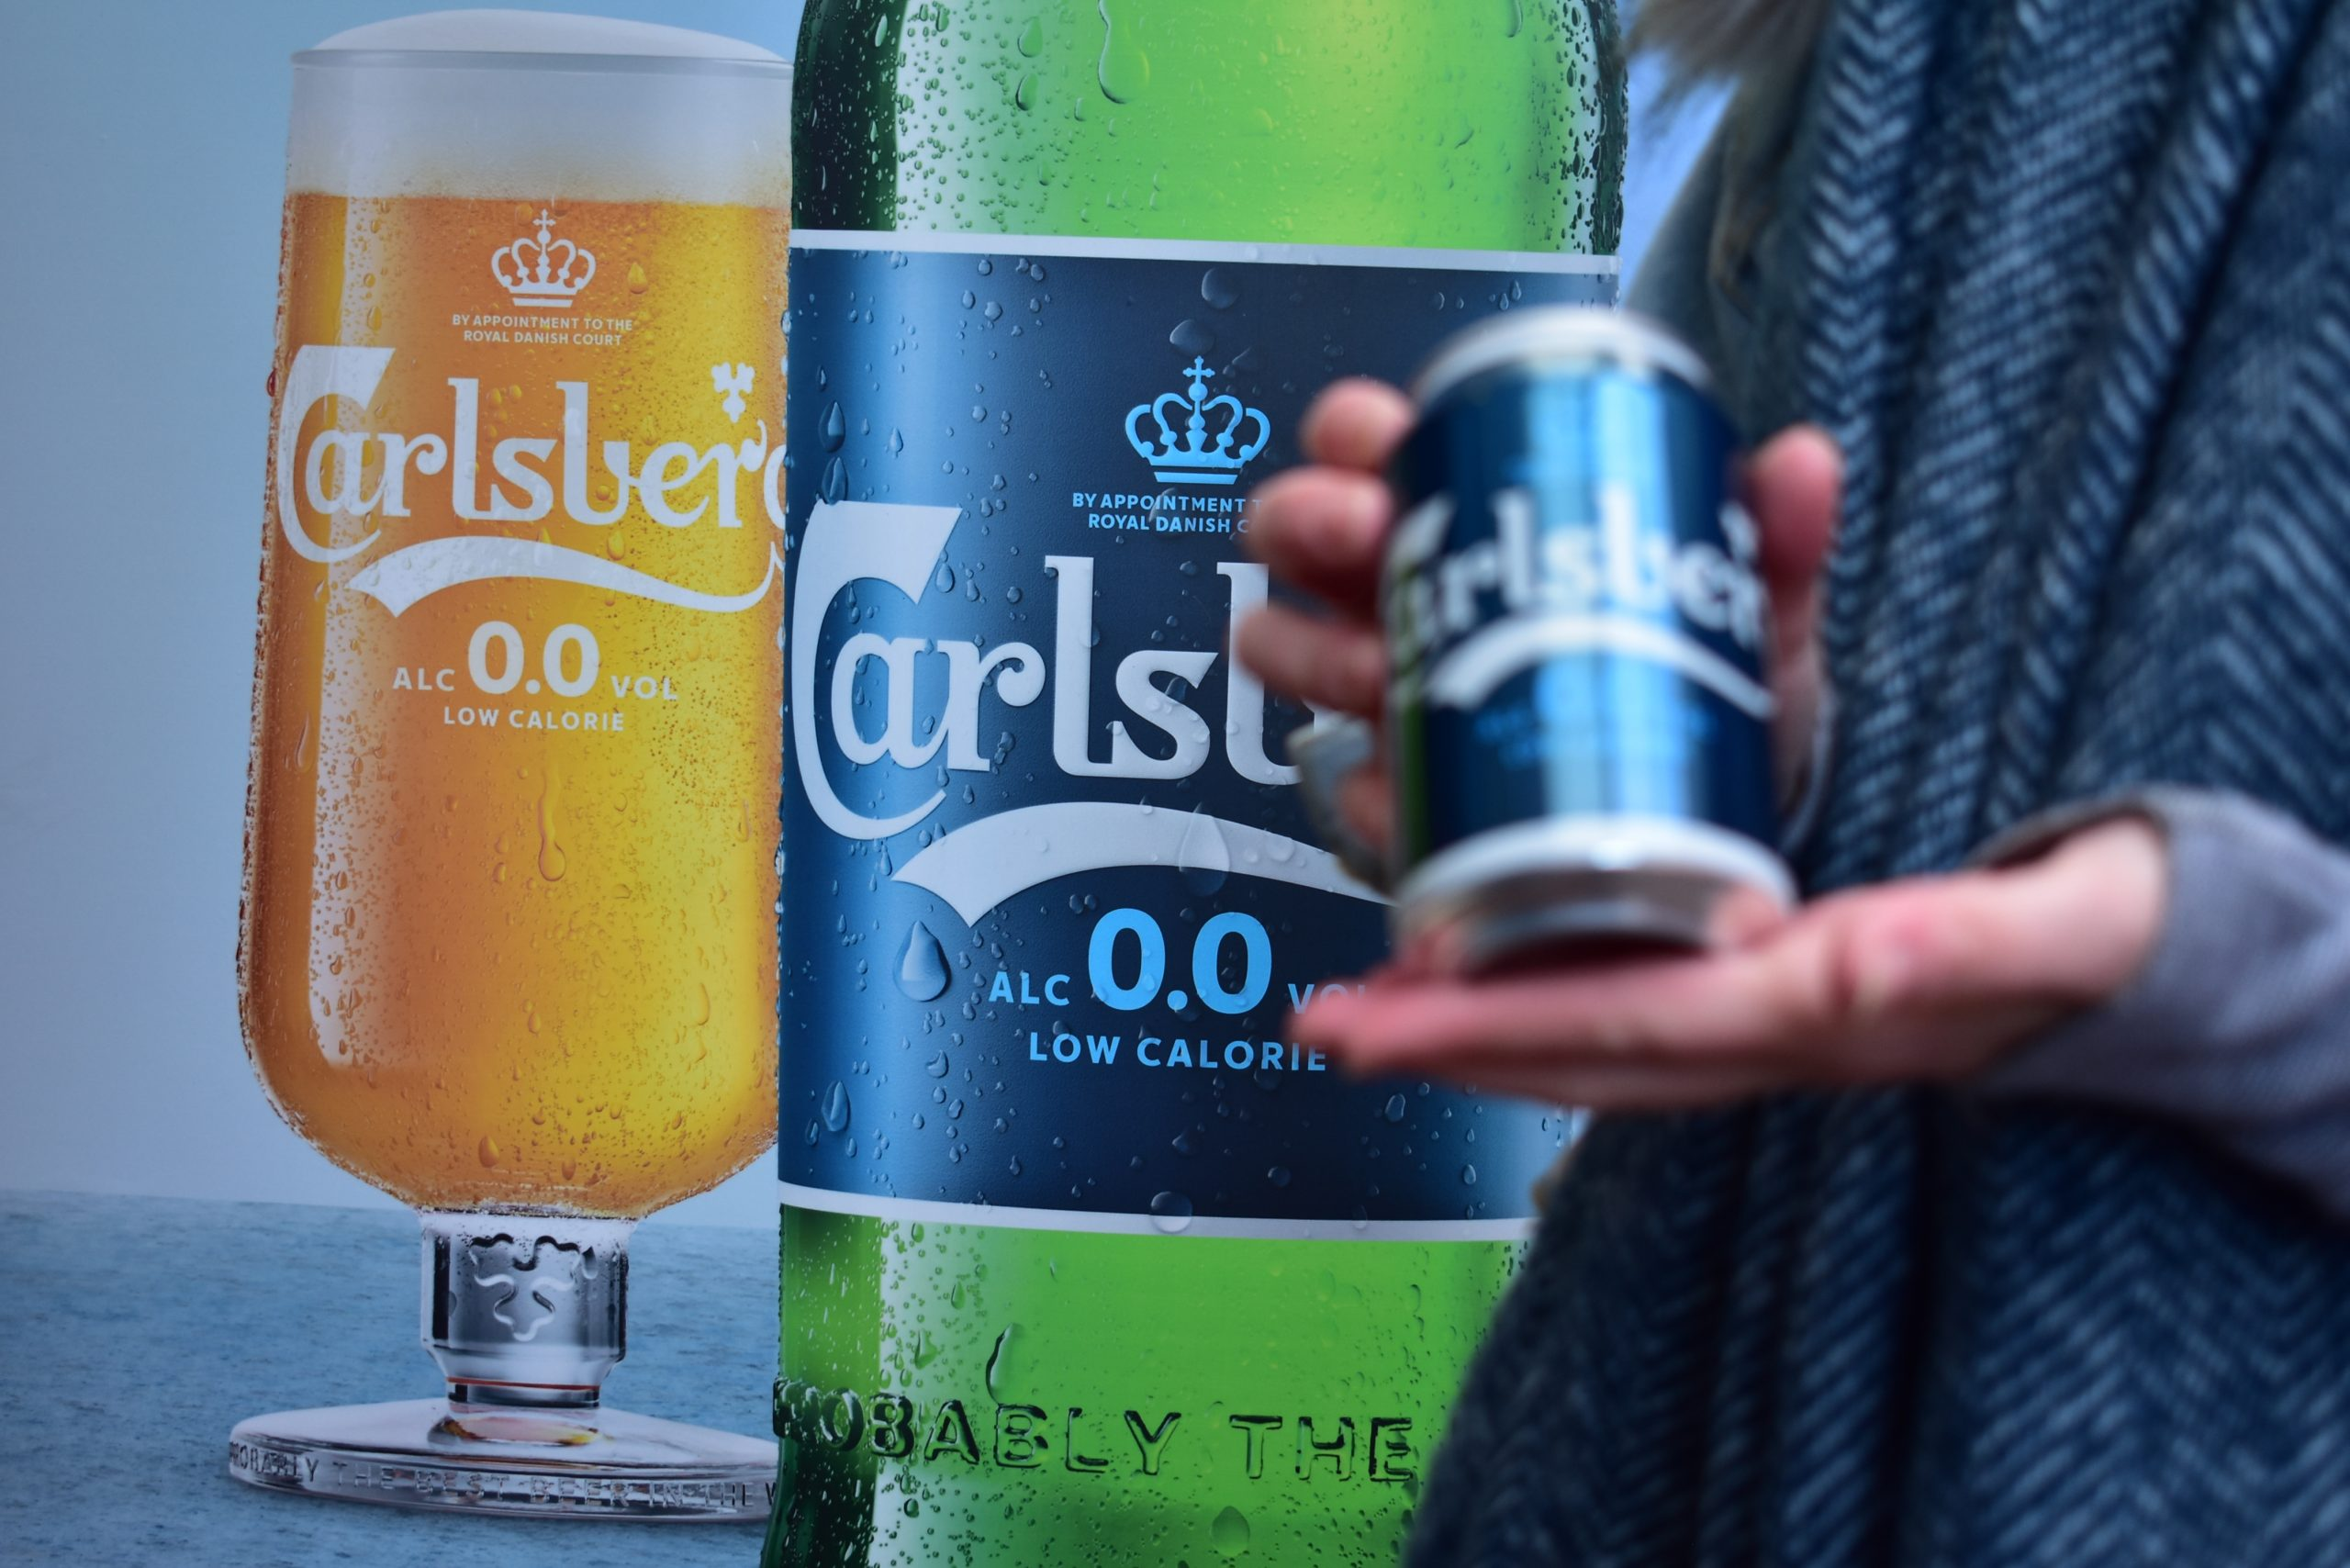 Diageo launched Carlsberg 0.0 with an innovative Out of Home campaign dispensing free cans of the product from an Adshel in Belfast.